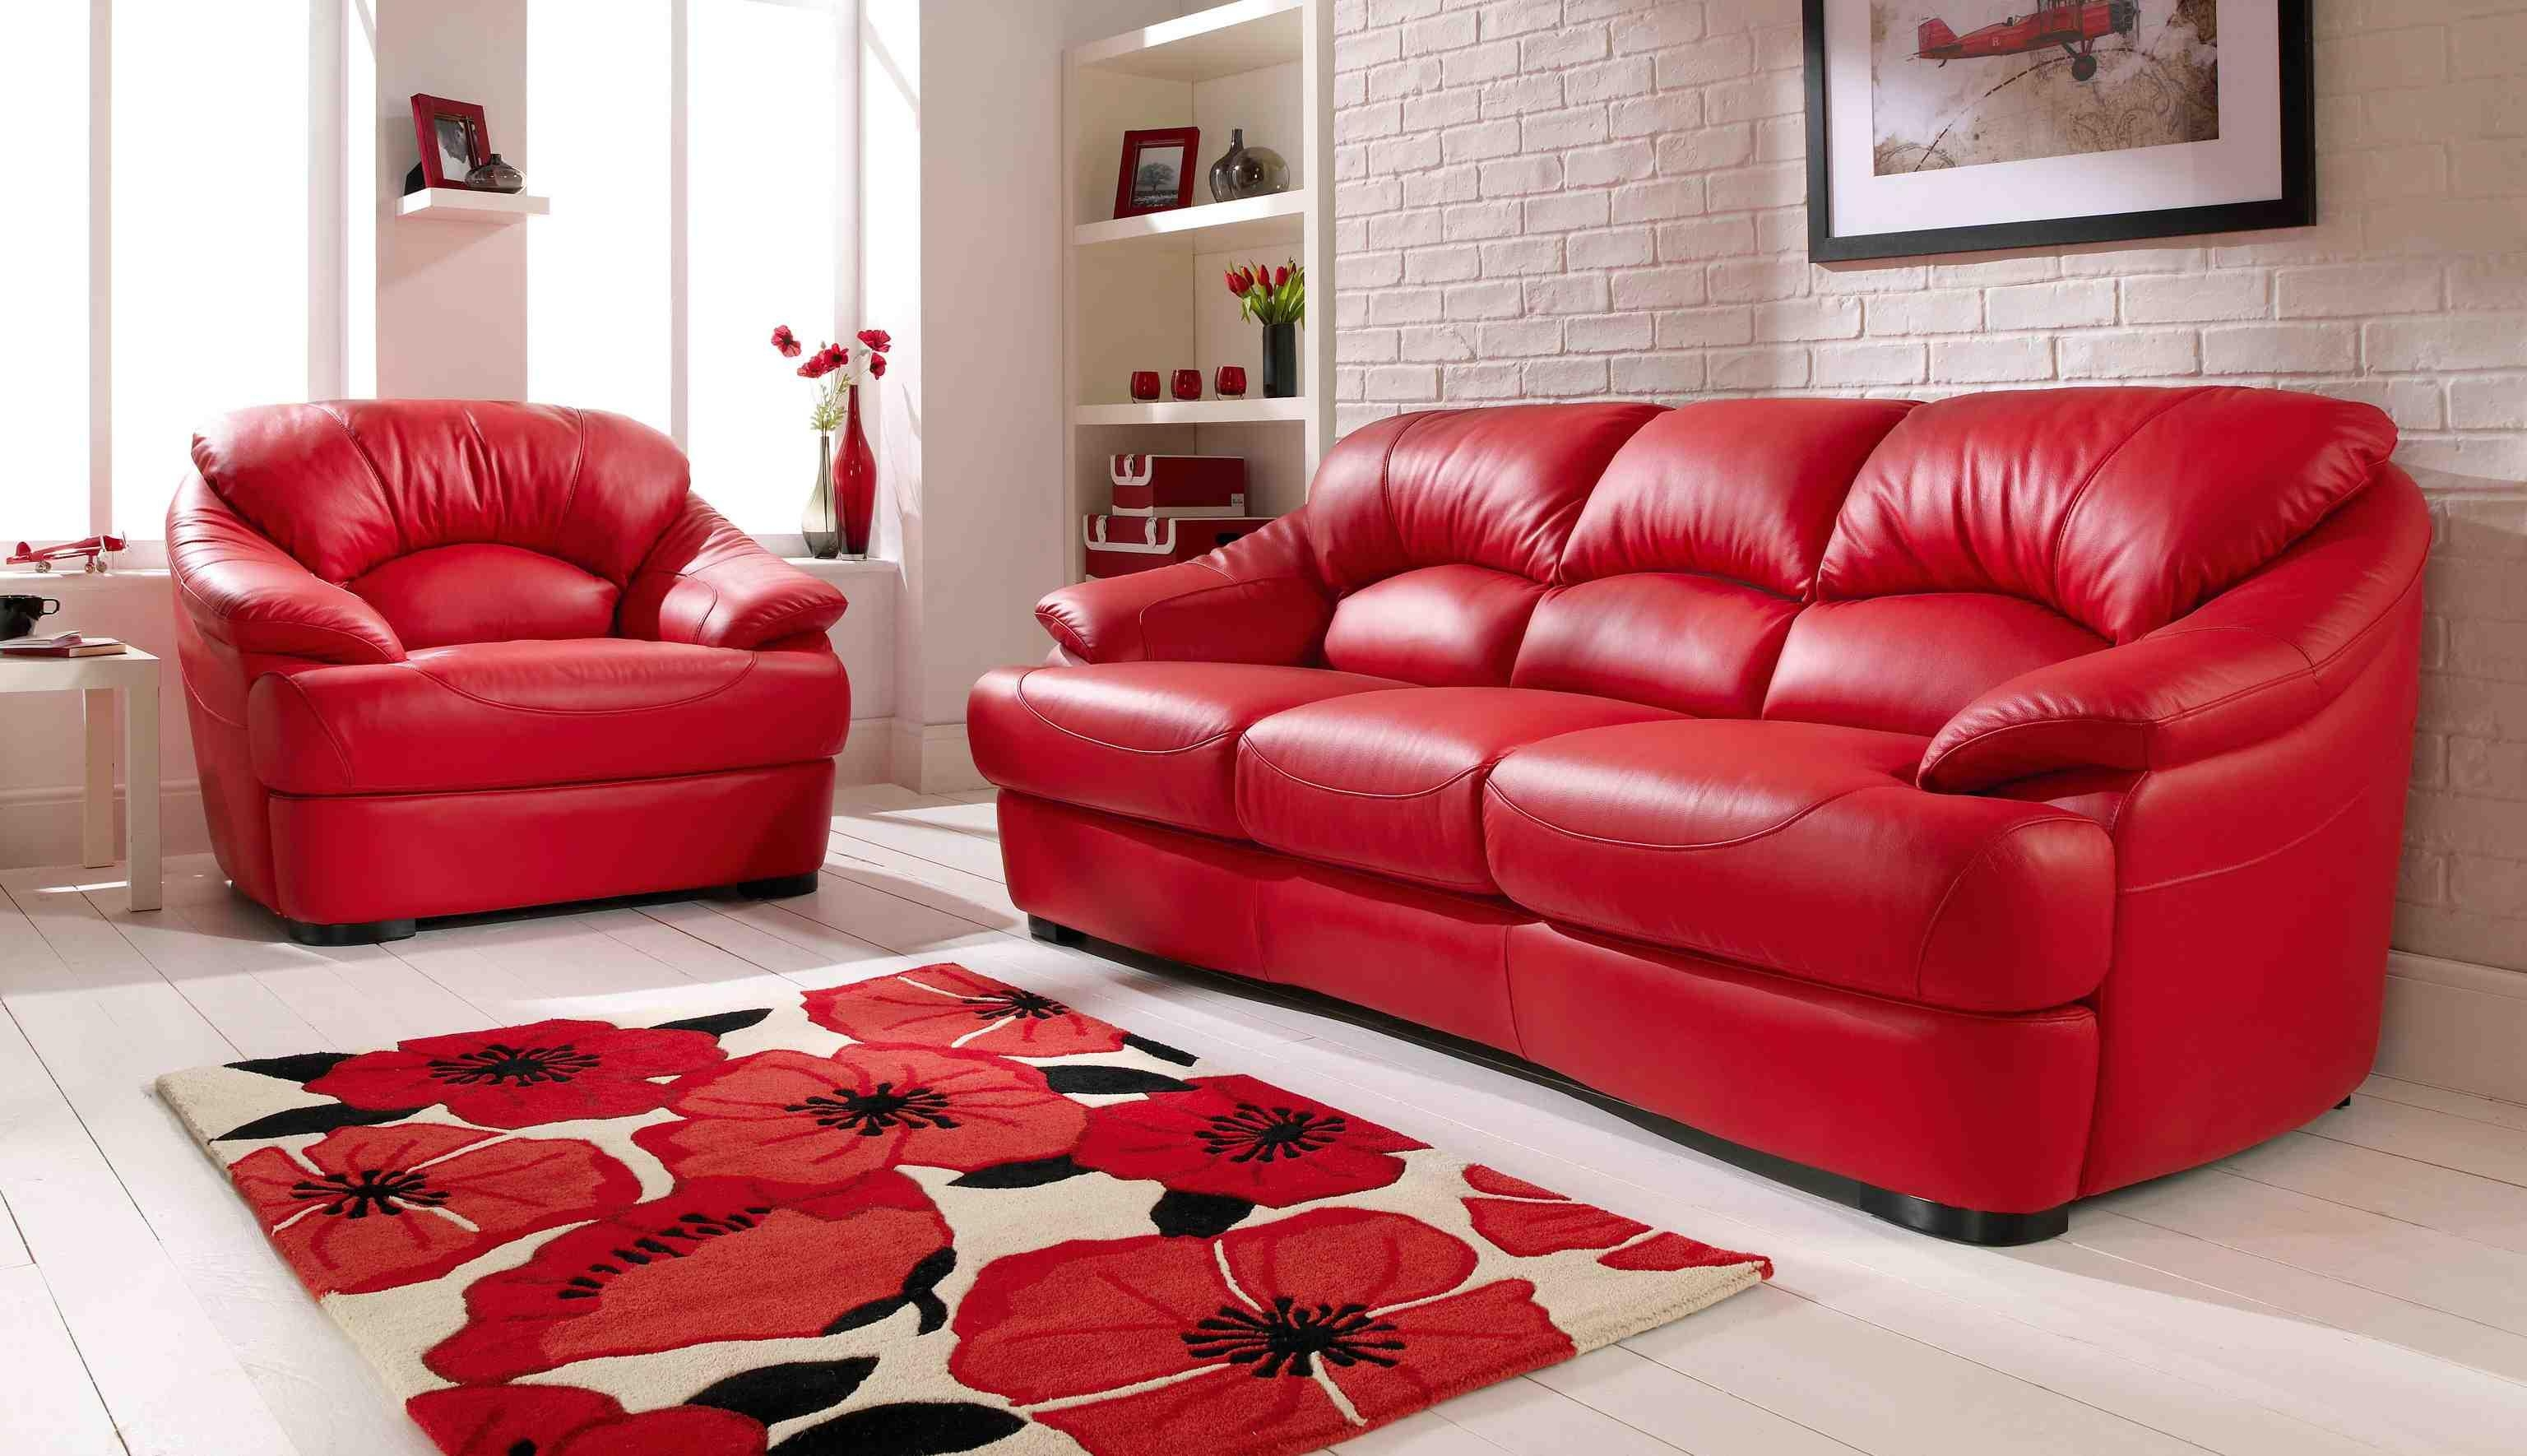 Sofas Center : Unusual Red Leatherofa Pictures Design Corneralered Inside Unusual Sofas (View 11 of 20)